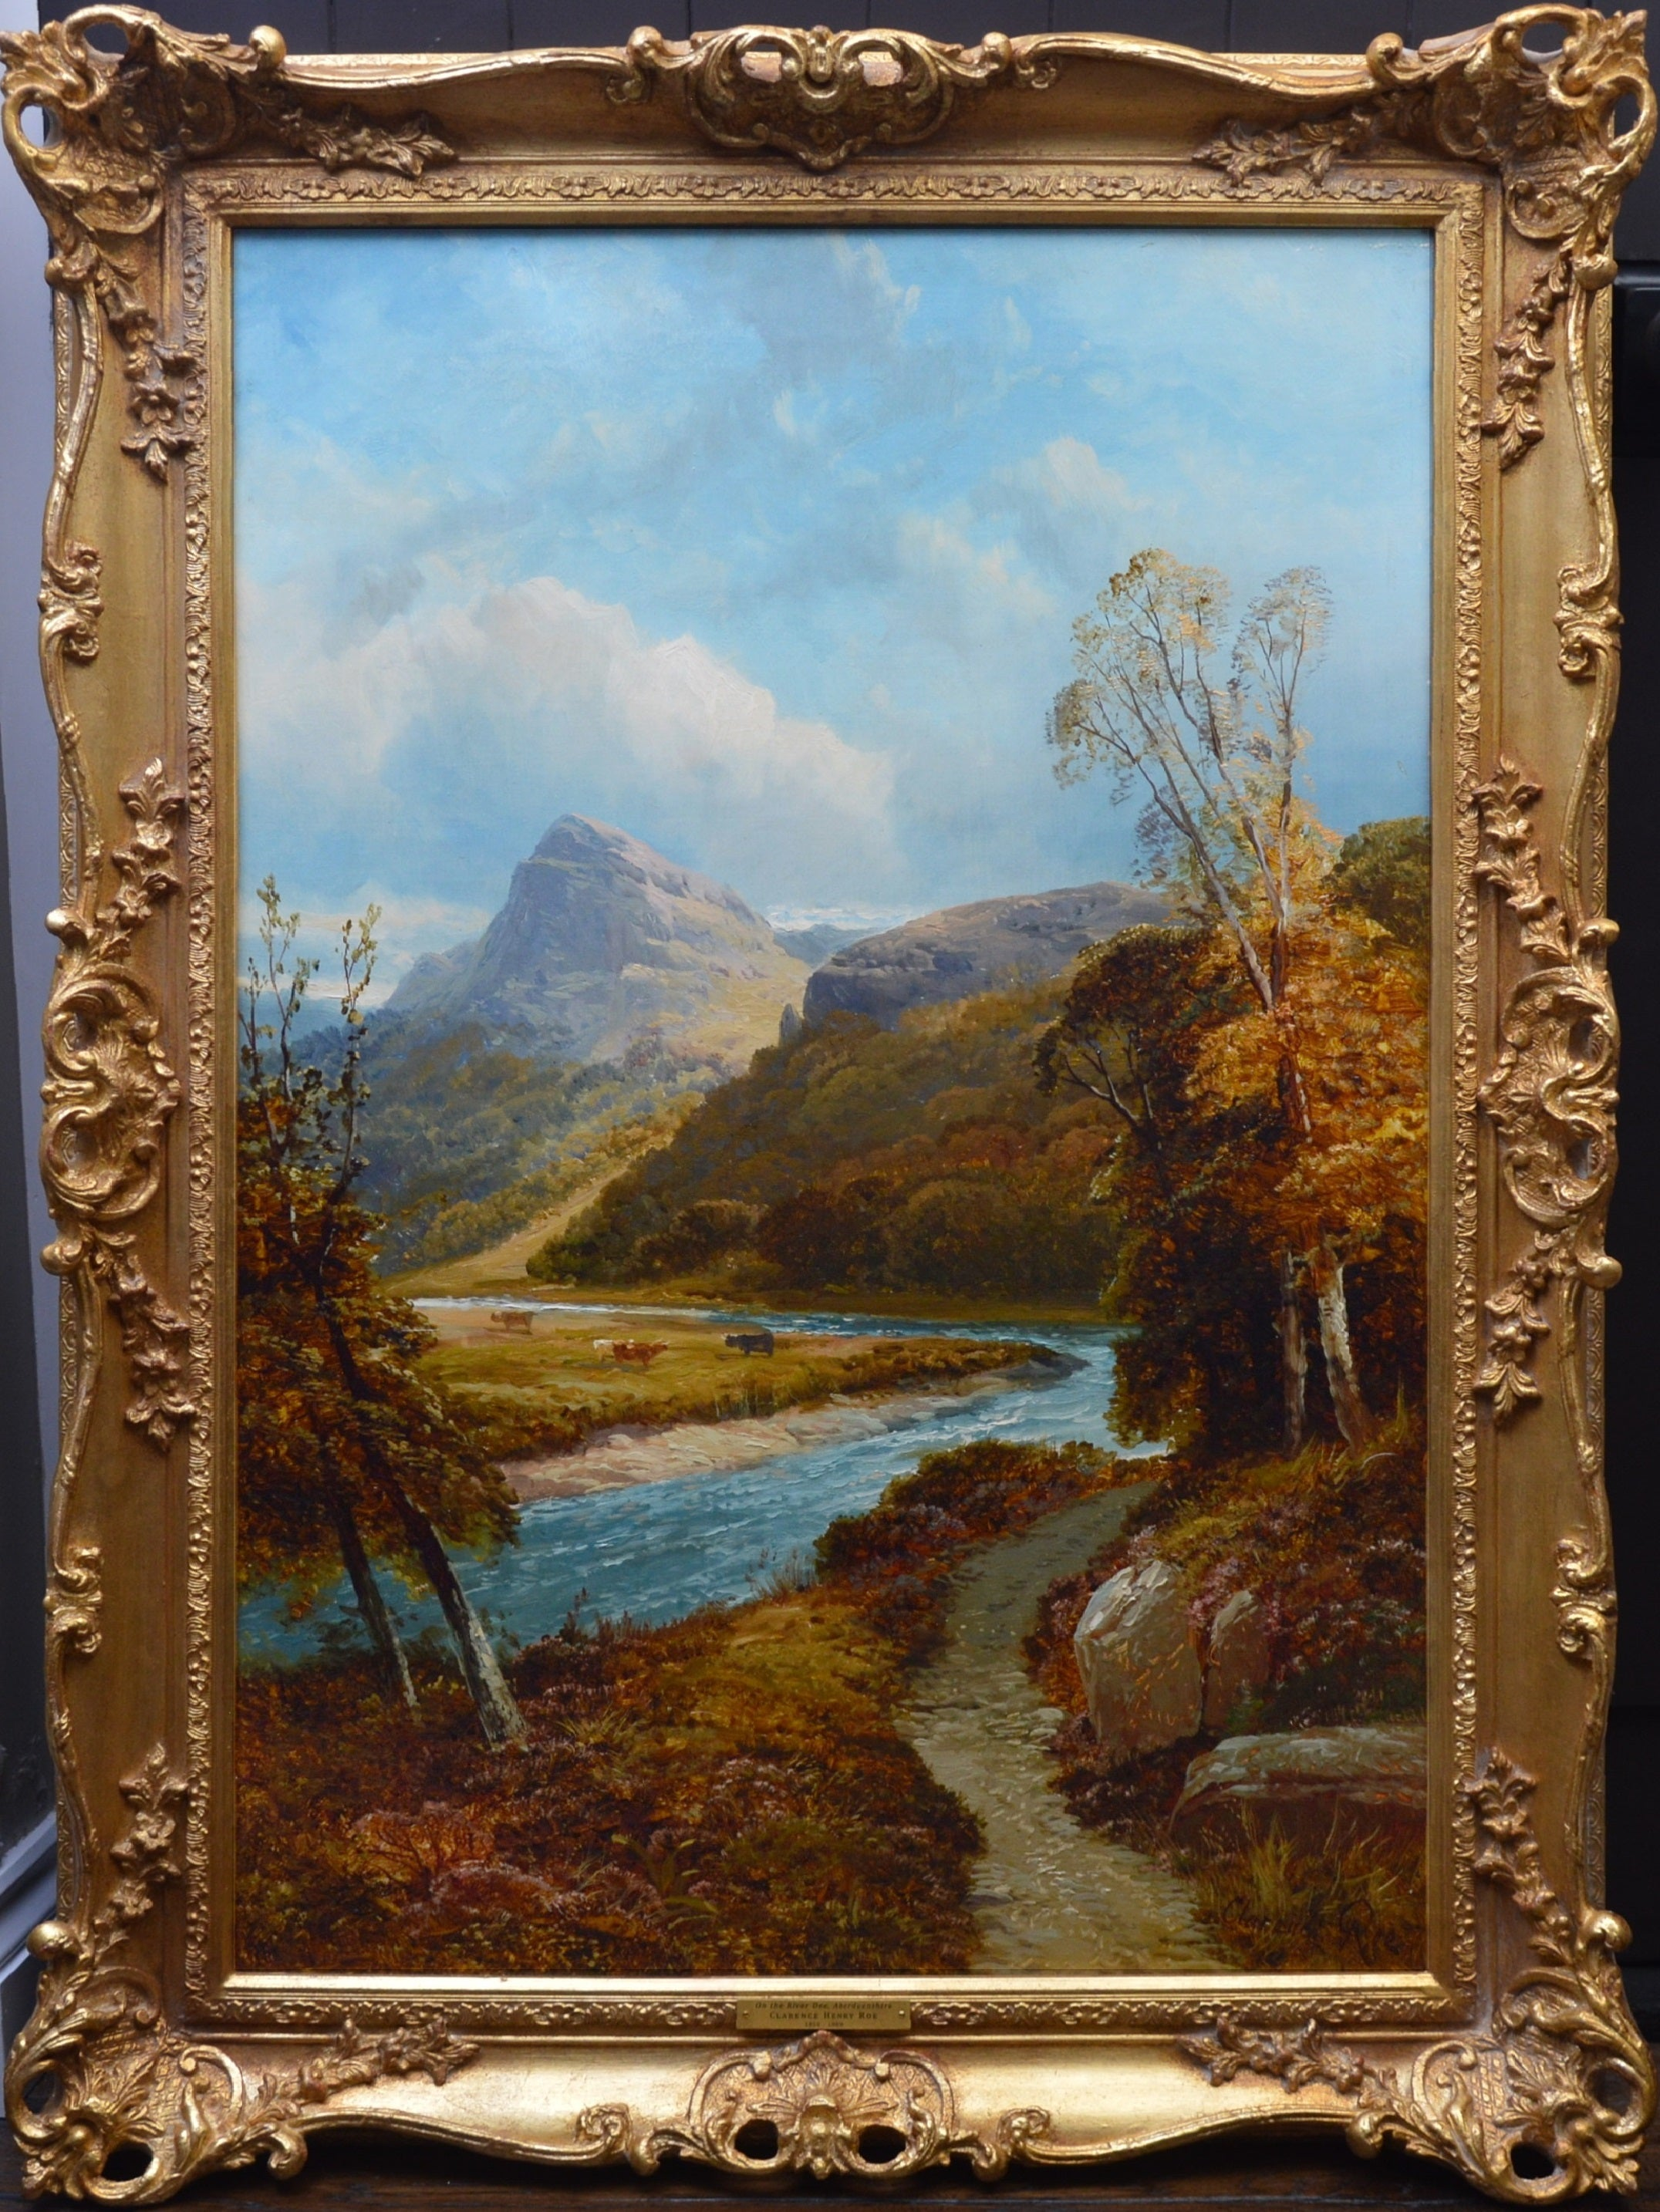 On the River Dee - Large 19th Century Scottish Landscape Oil Painting